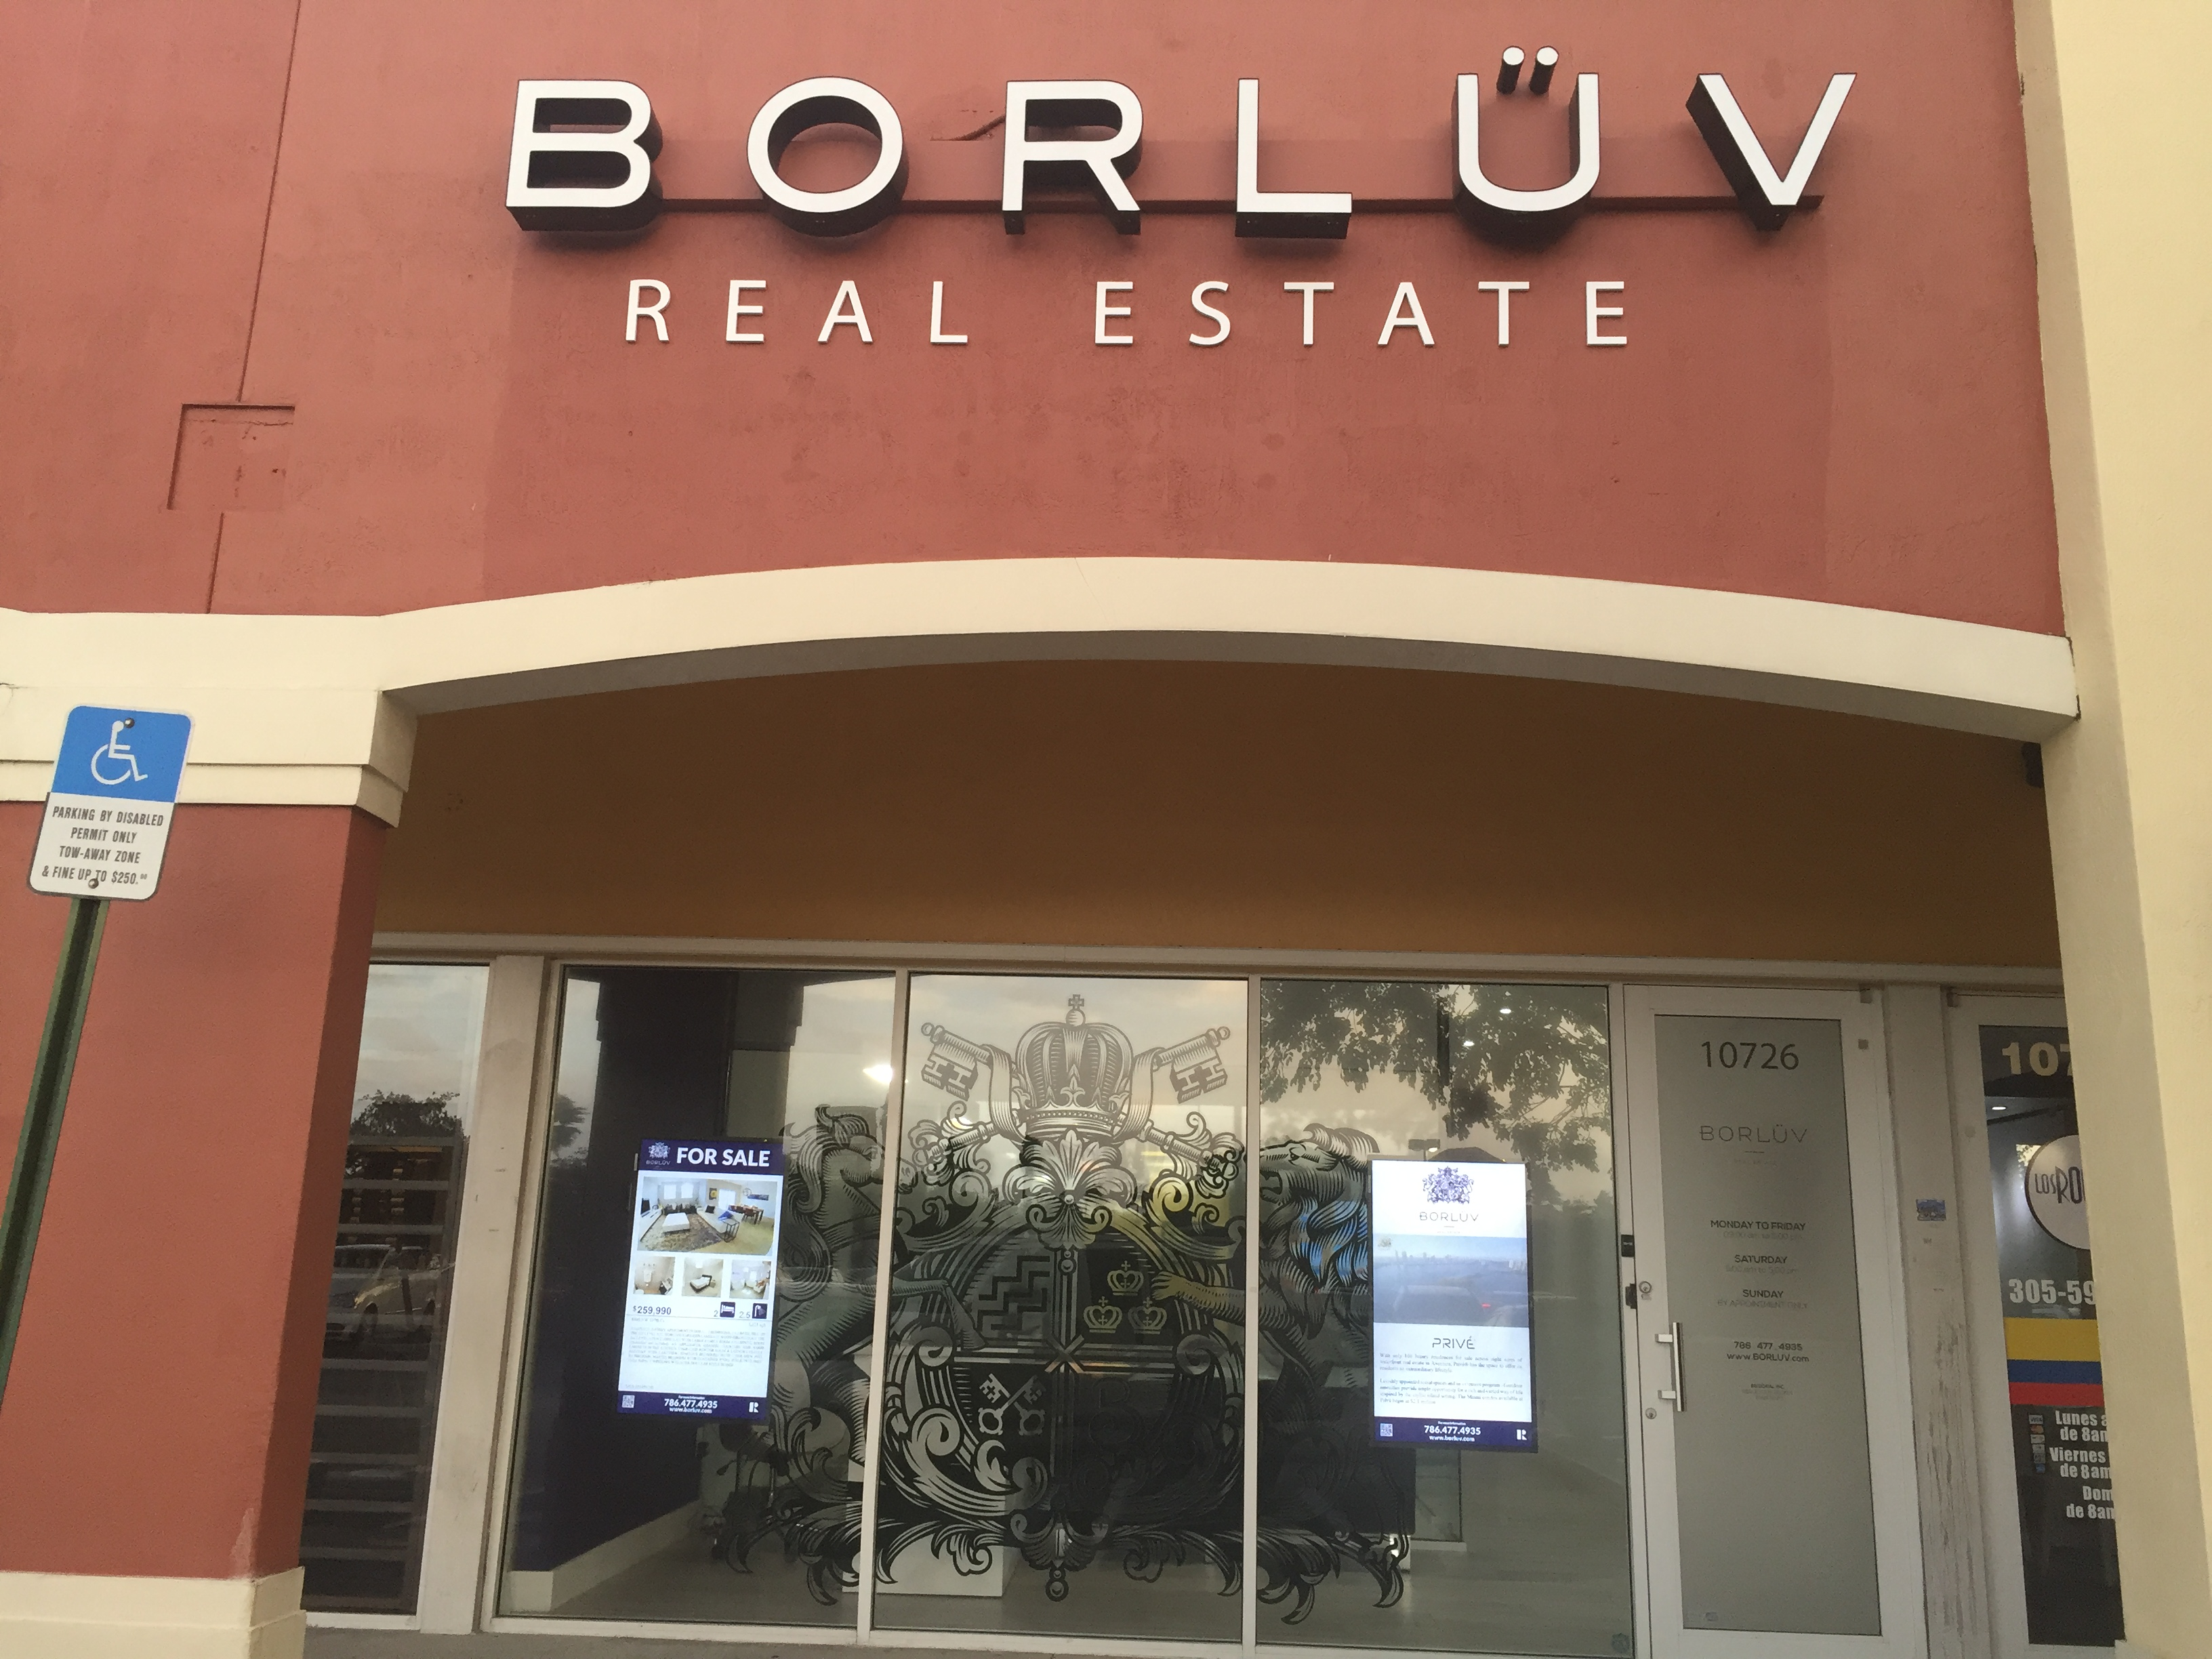 BORLUV REAL ESTATE